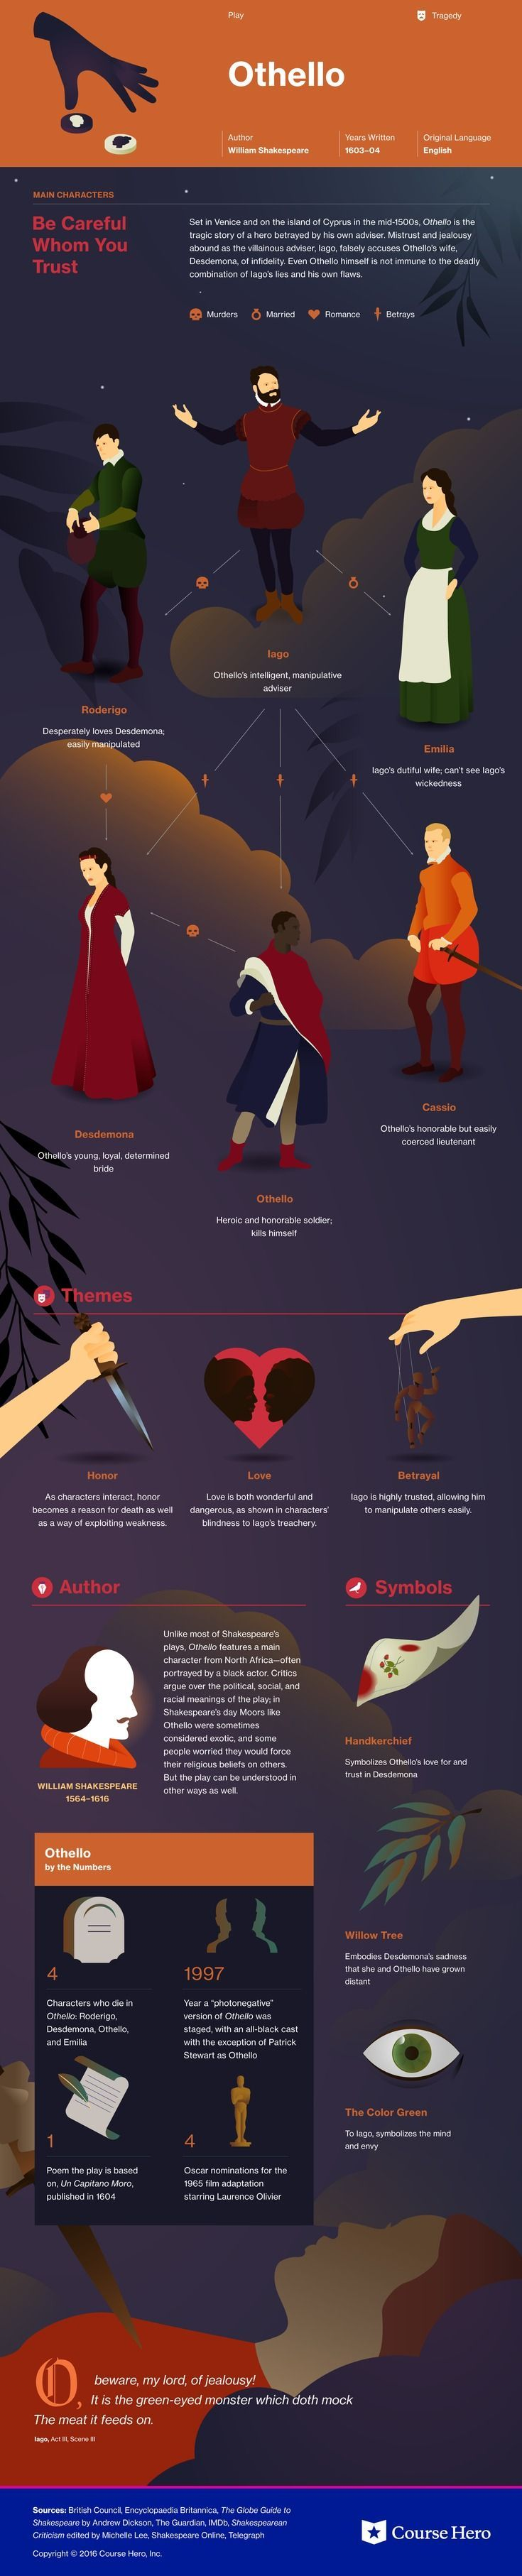 Infographic This @CourseHero infographic on Othello is both visually stunning and informative!This @CourseHero infographic on Othello is both visually stunning and informative!